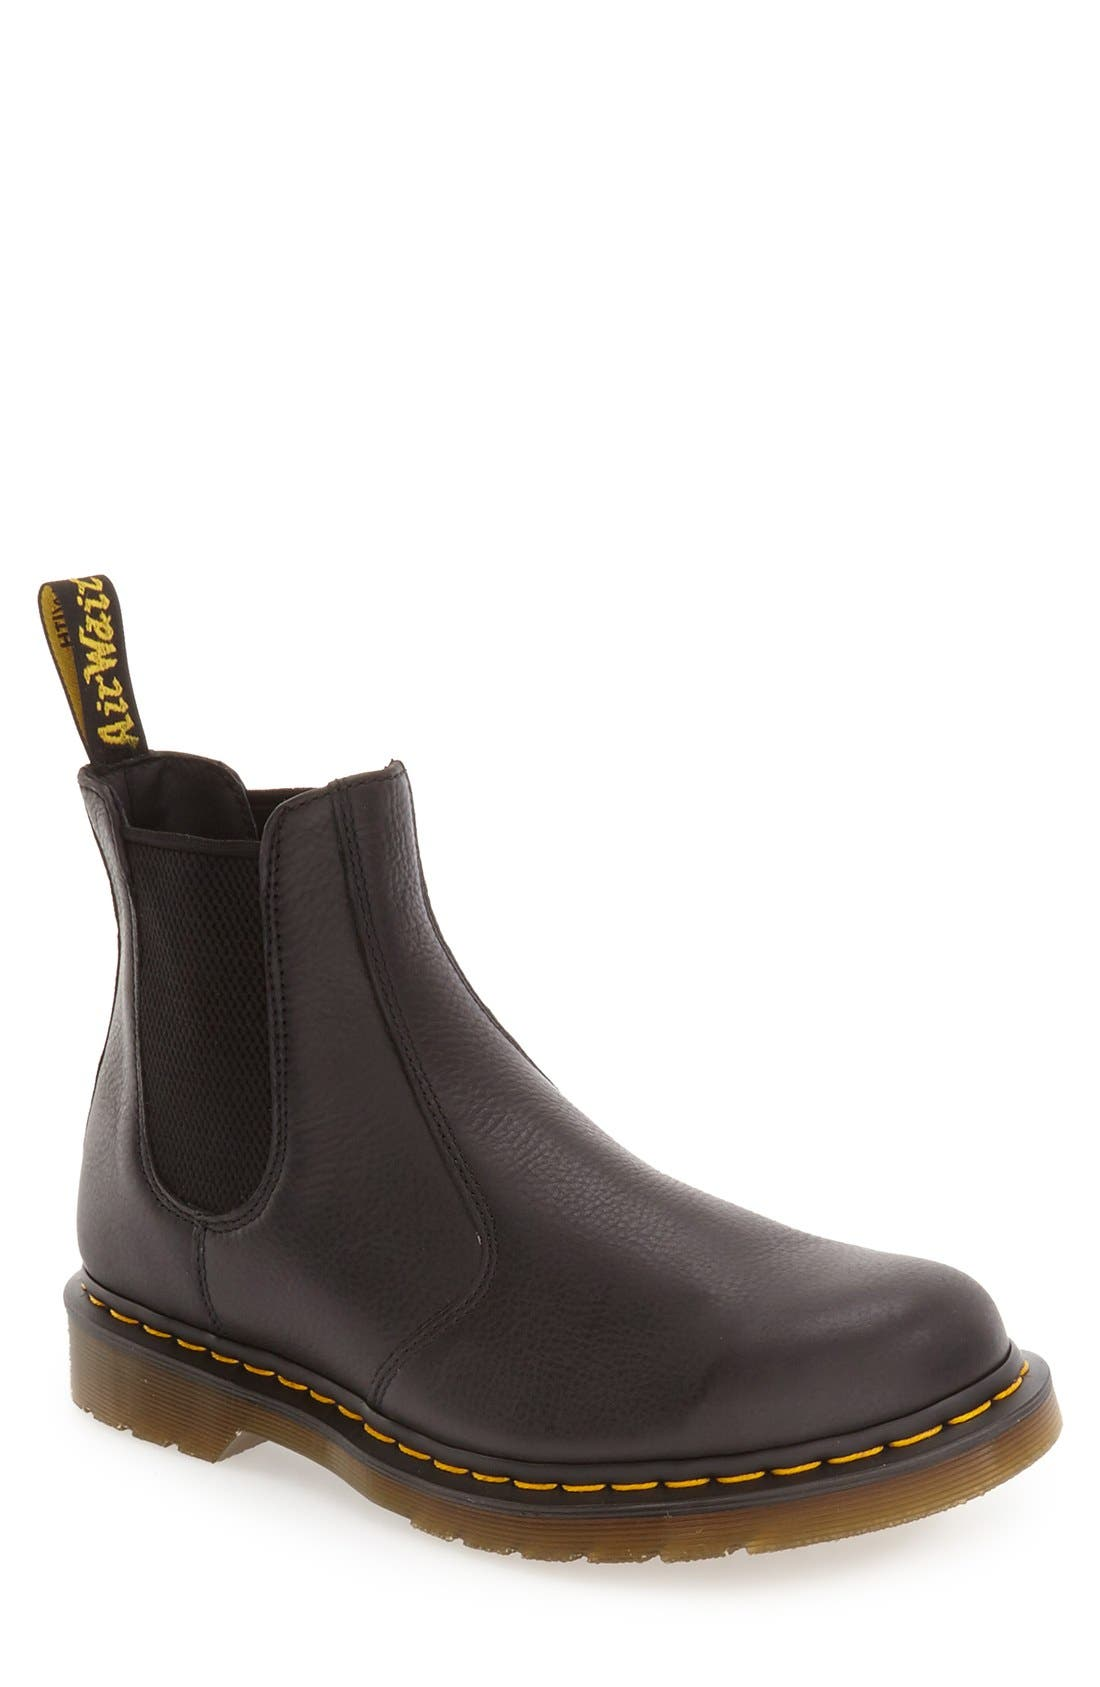 Alternate Image 1 Selected - Dr. Martens '2976' Chelsea Boot (Men)